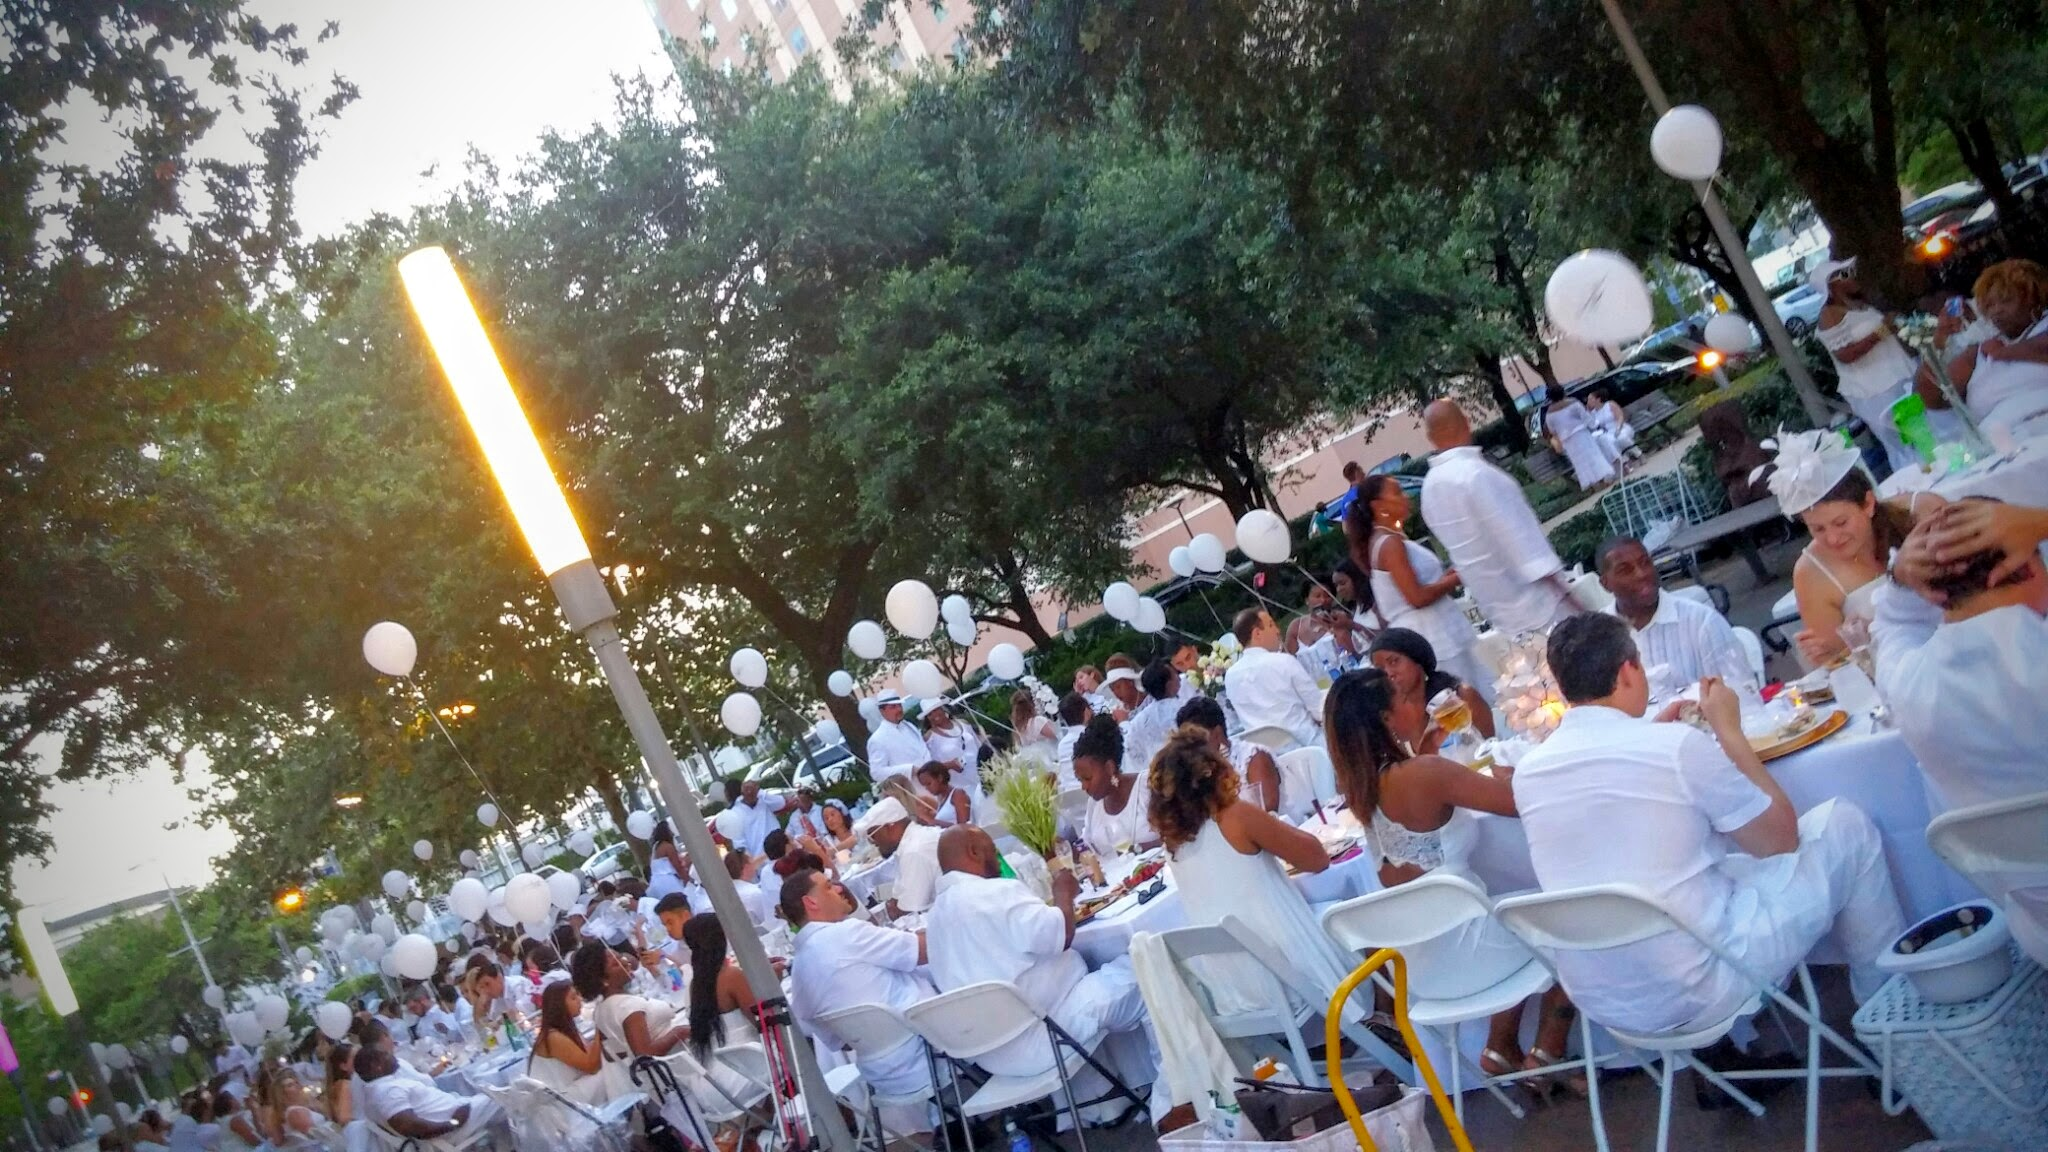 2015 Secret location: Discovery Green - Downtown